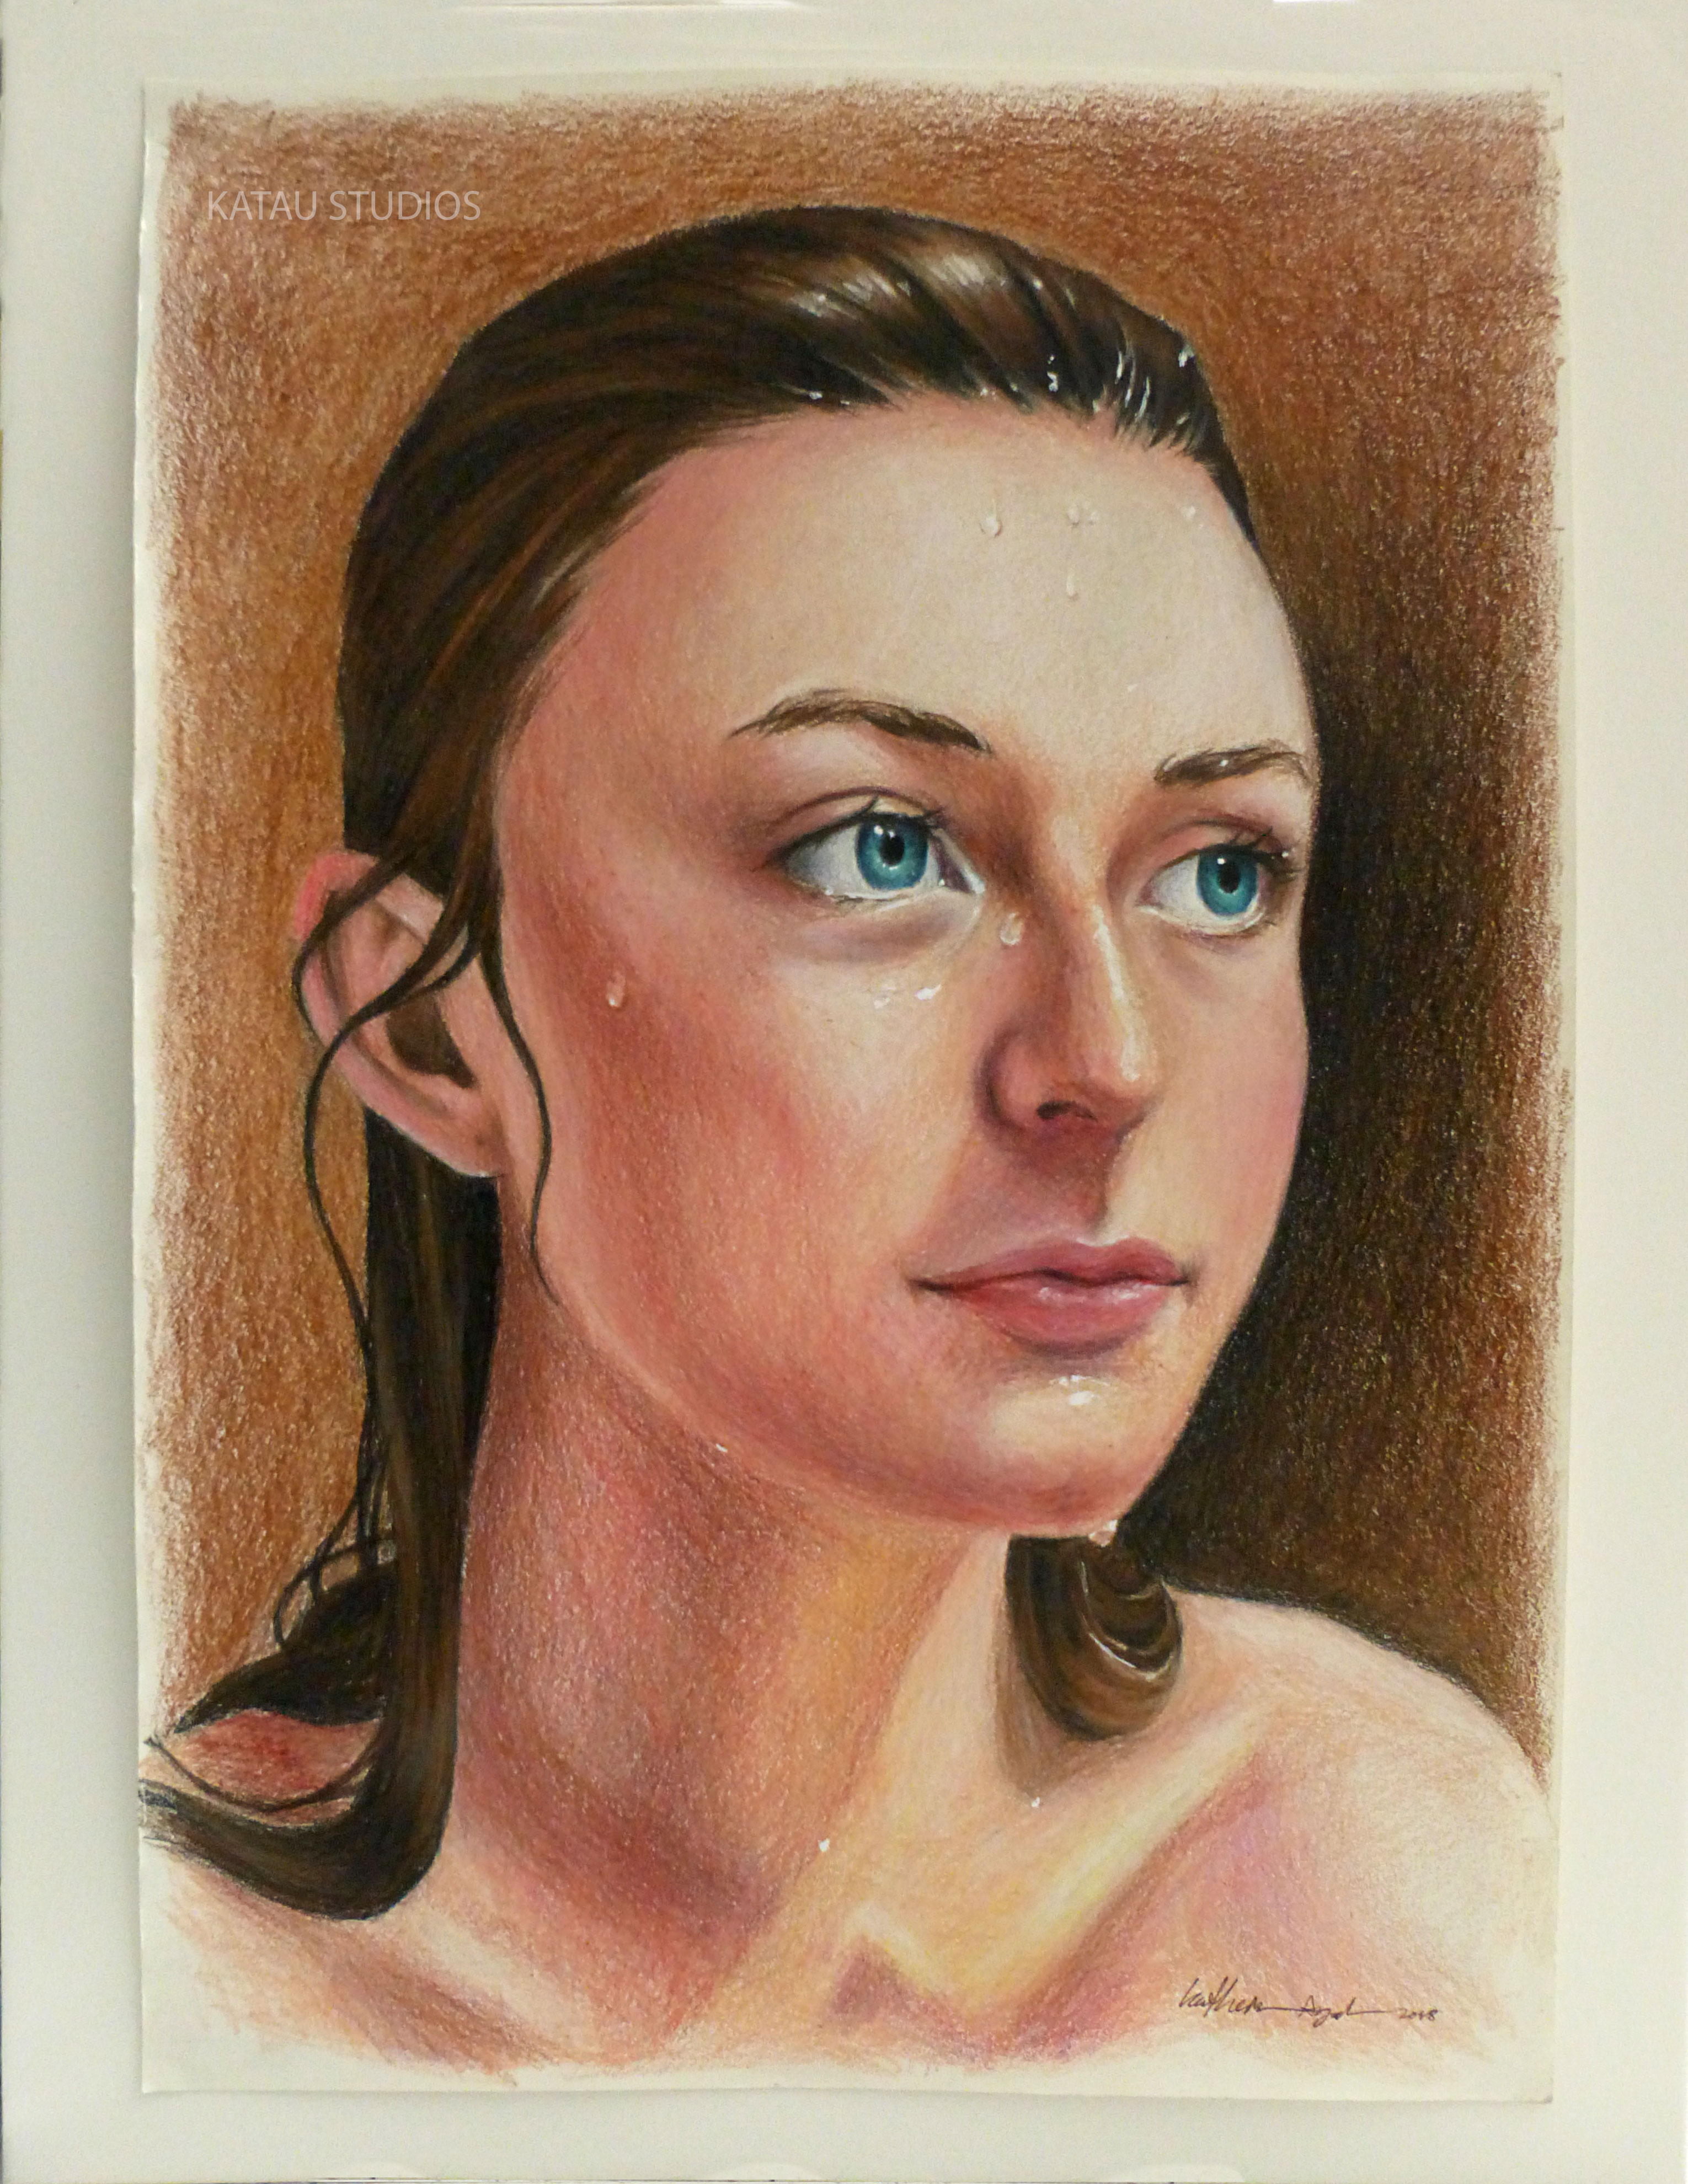 Wet Portrait Drawing - Colored Pencil & White Ink